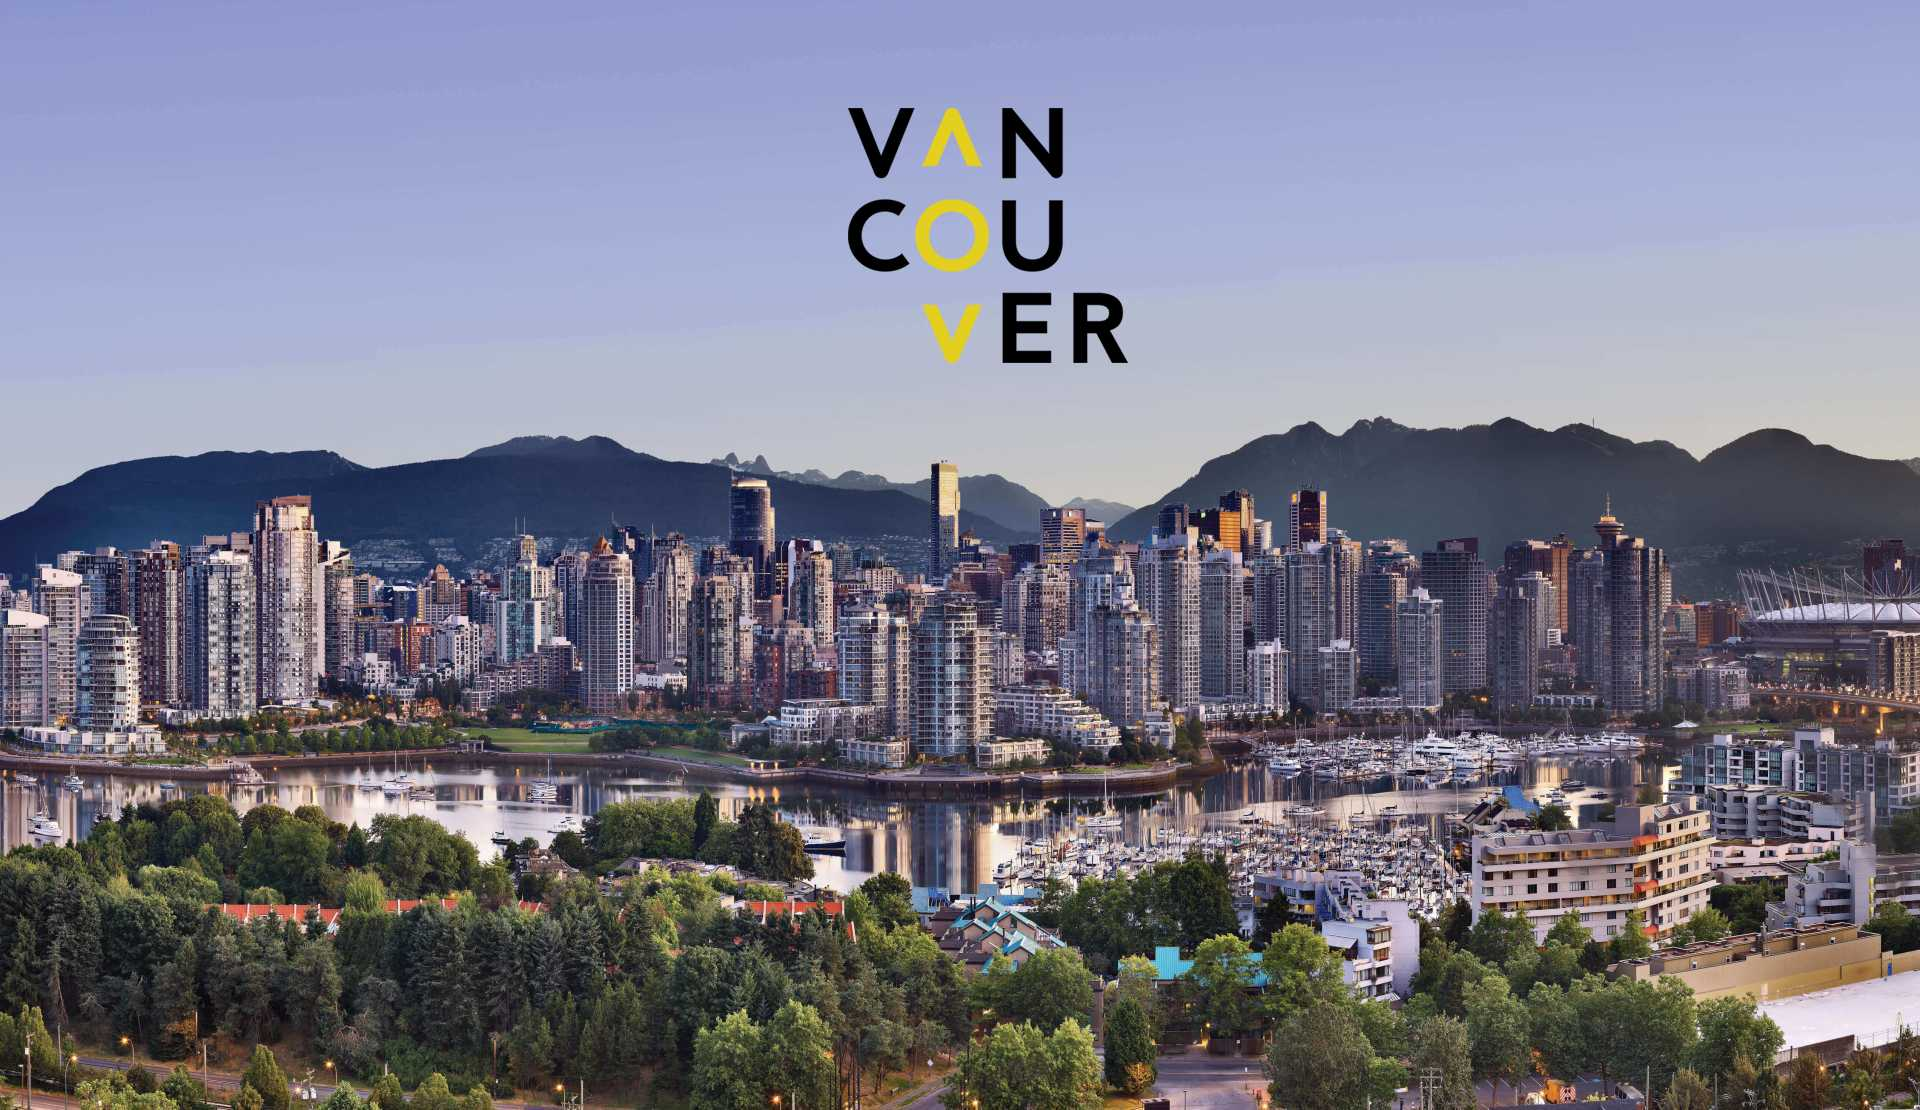 Vancouver state skyline clipart clipart free stock Vancouver Tourism Fast Facts | Tourism Vancouver clipart free stock